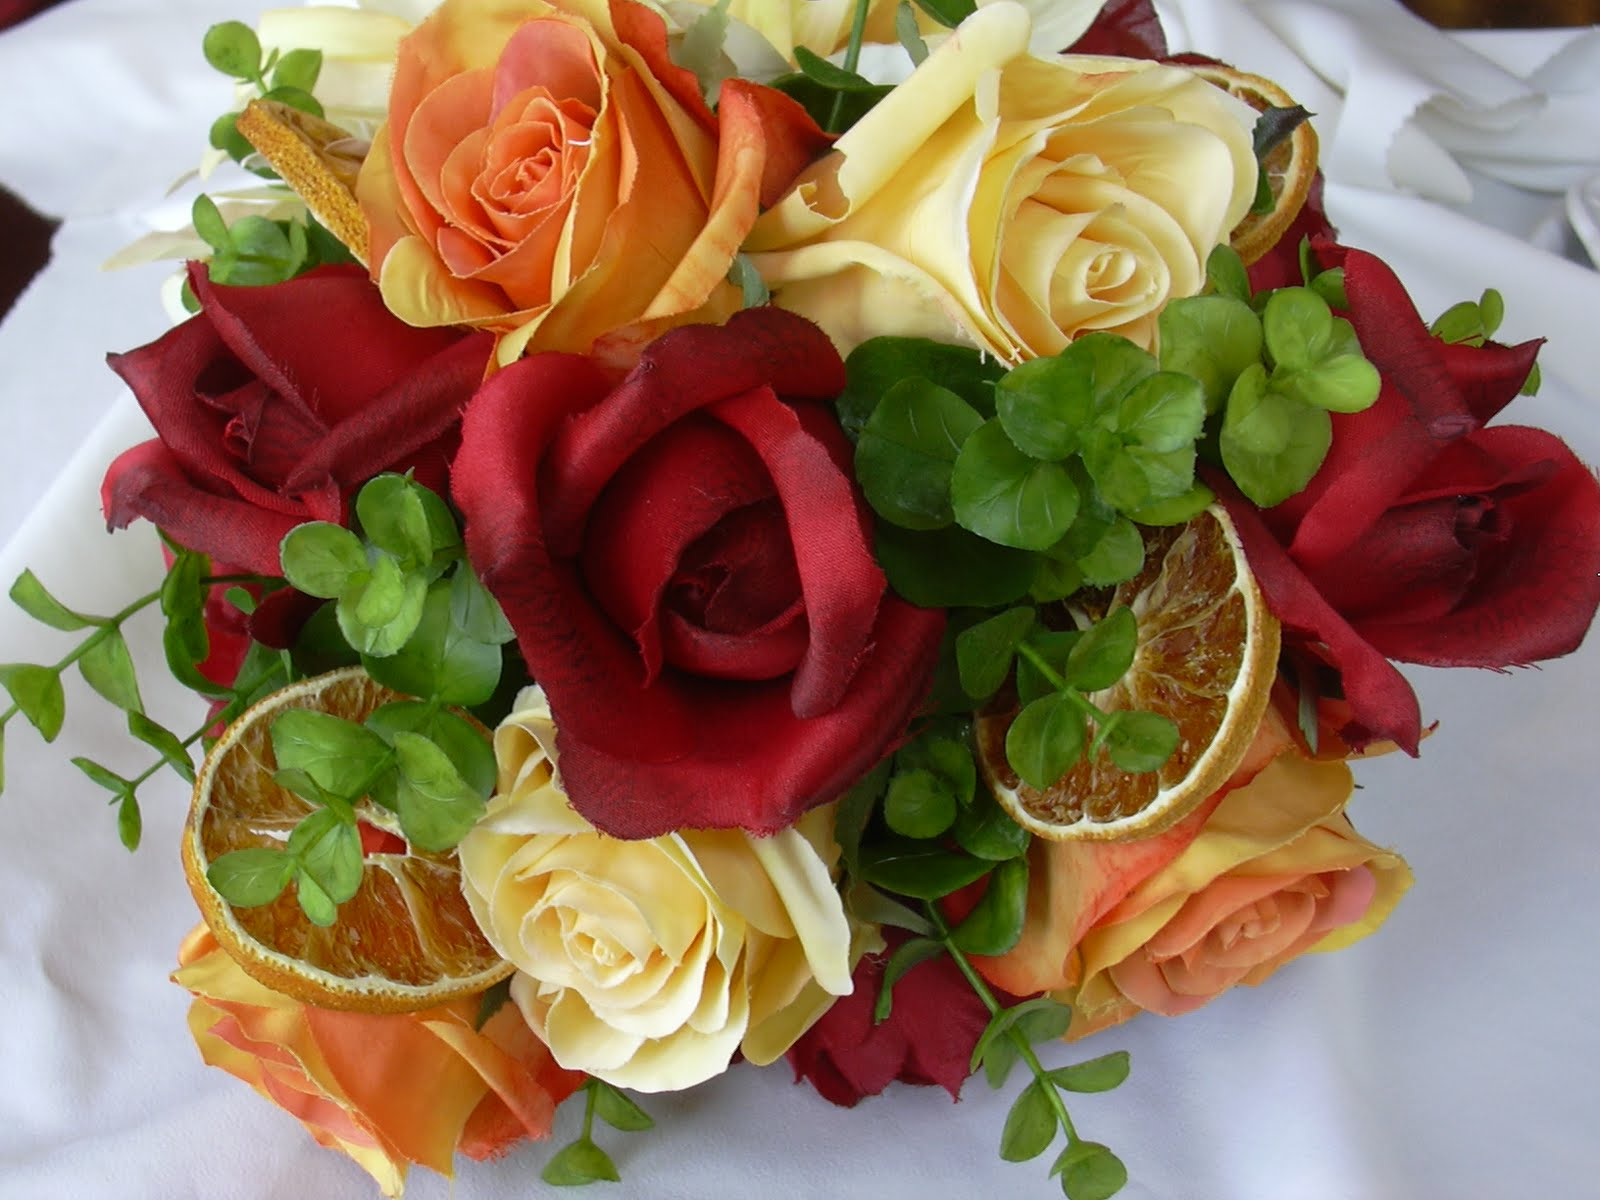 The Wedding Contessa: Roses Have Meaning